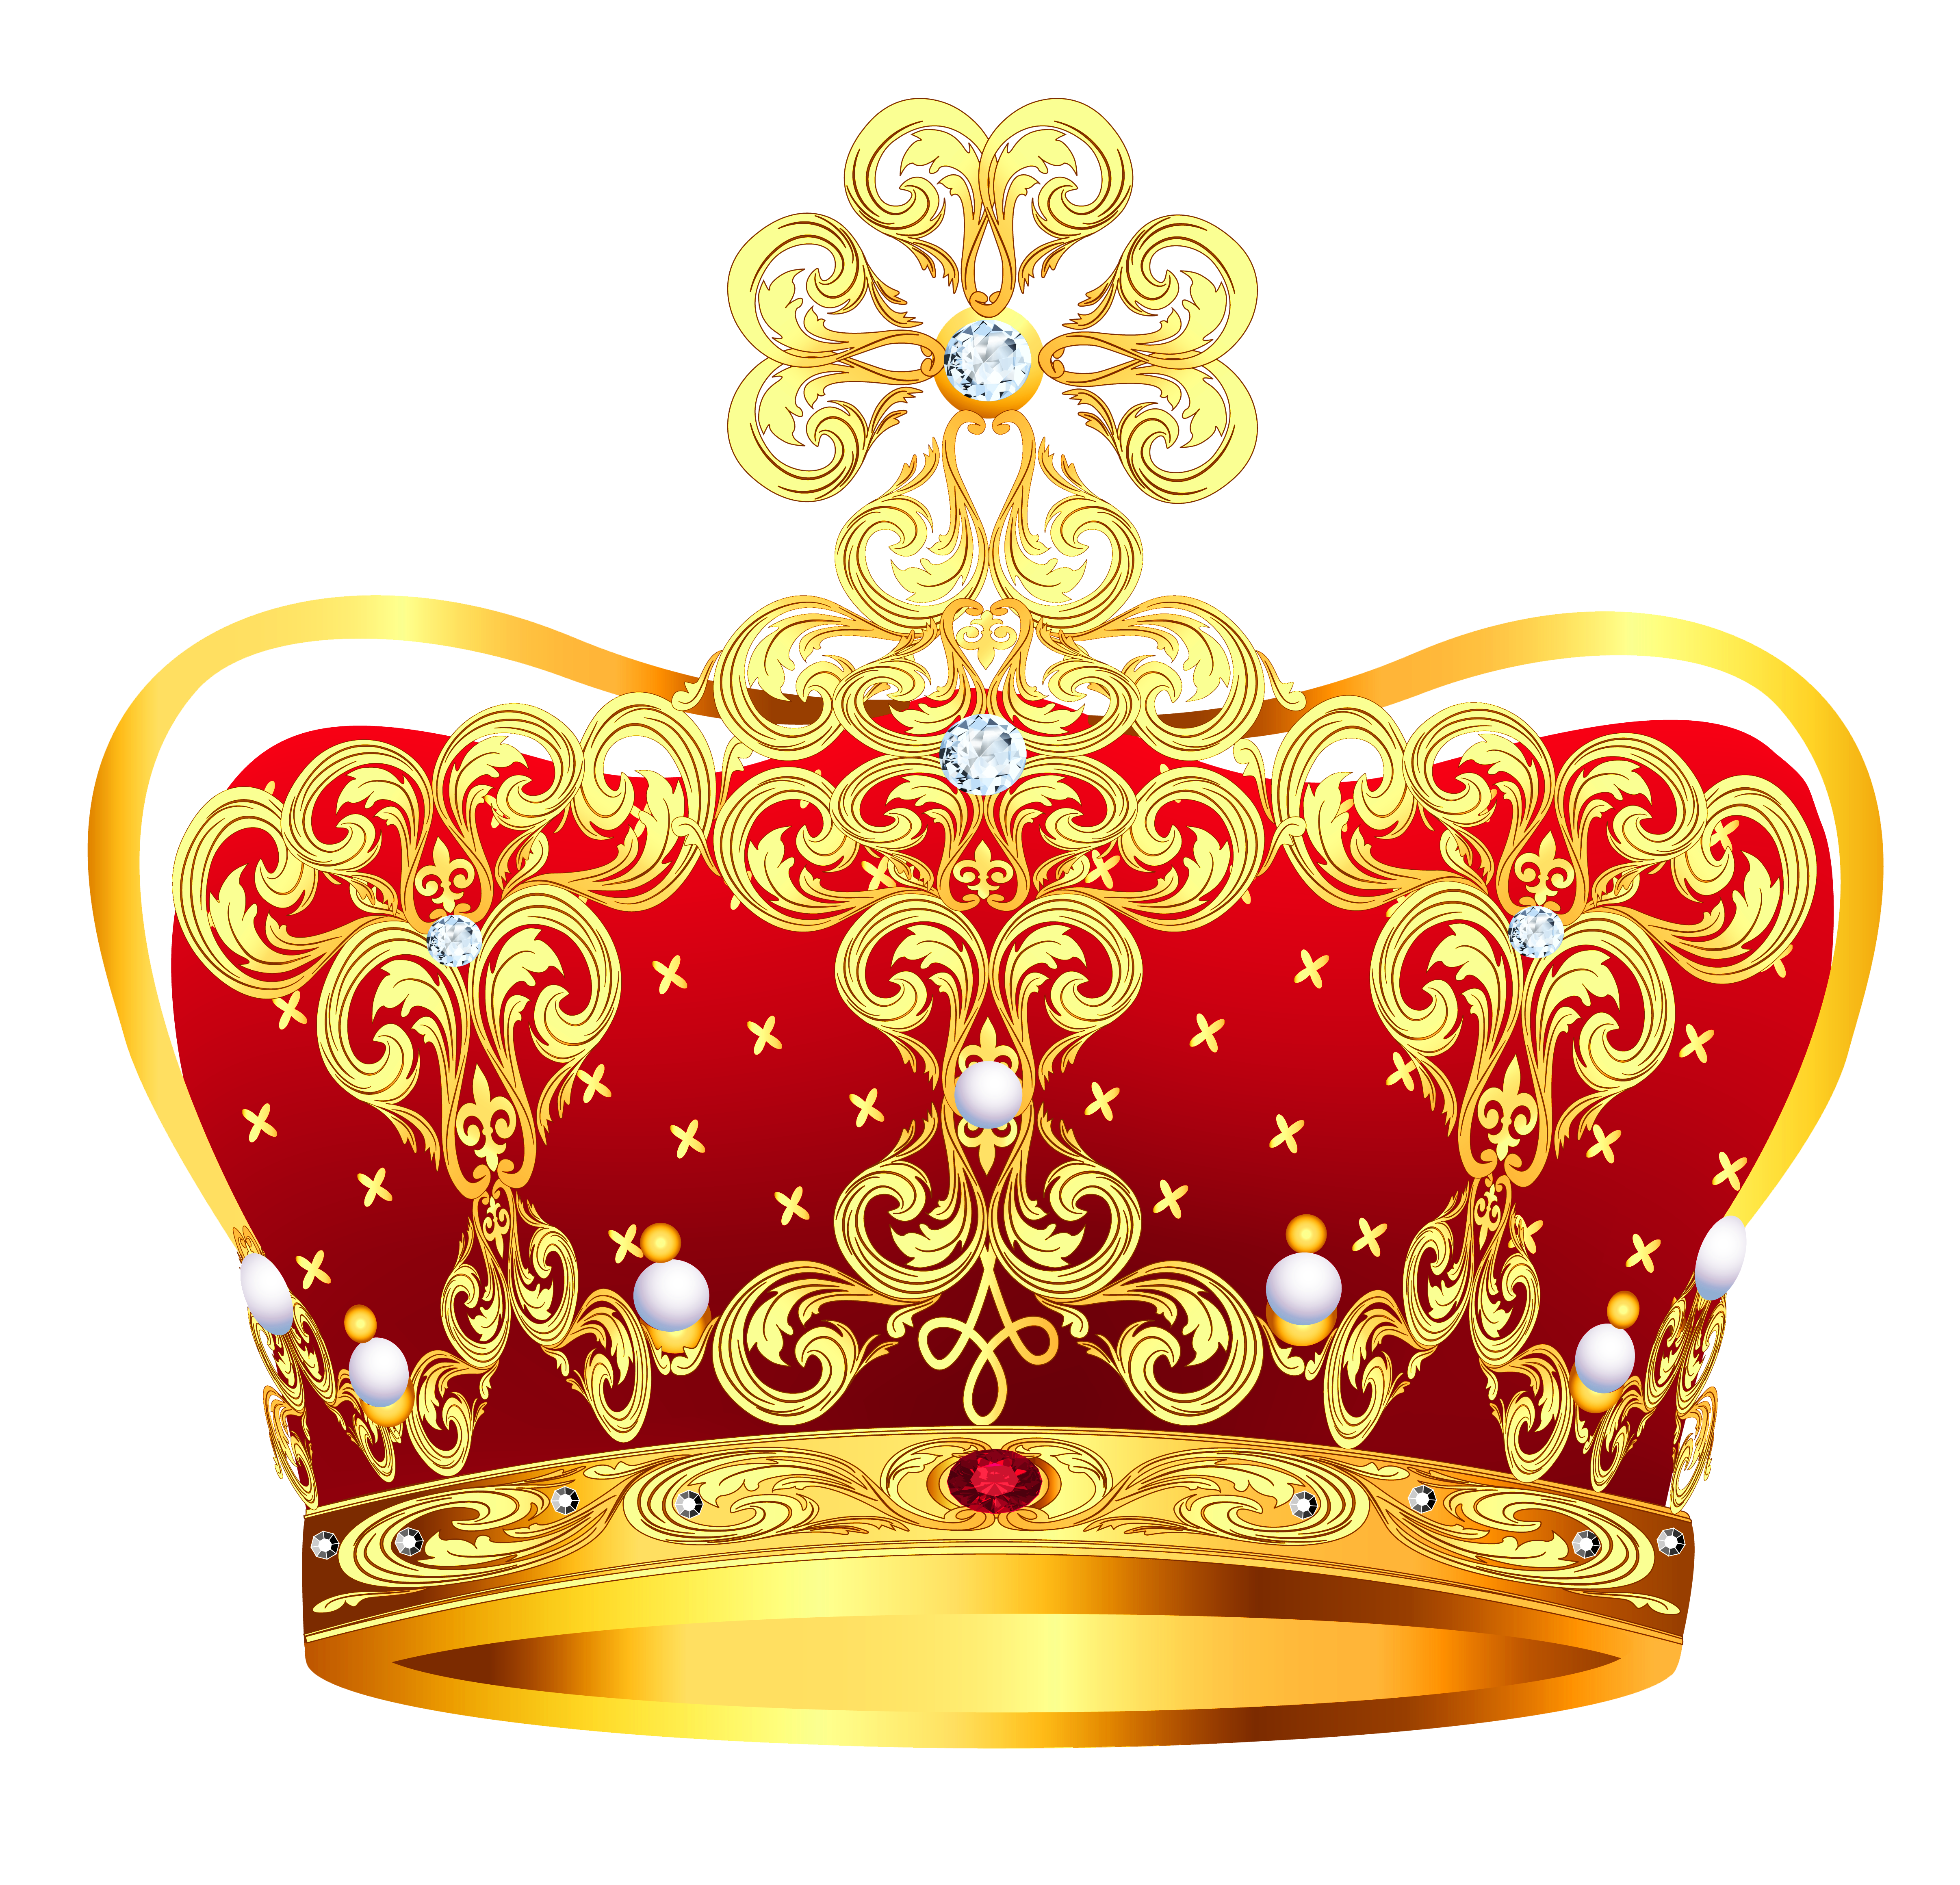 And red with pearls. Queen clipart crown gold